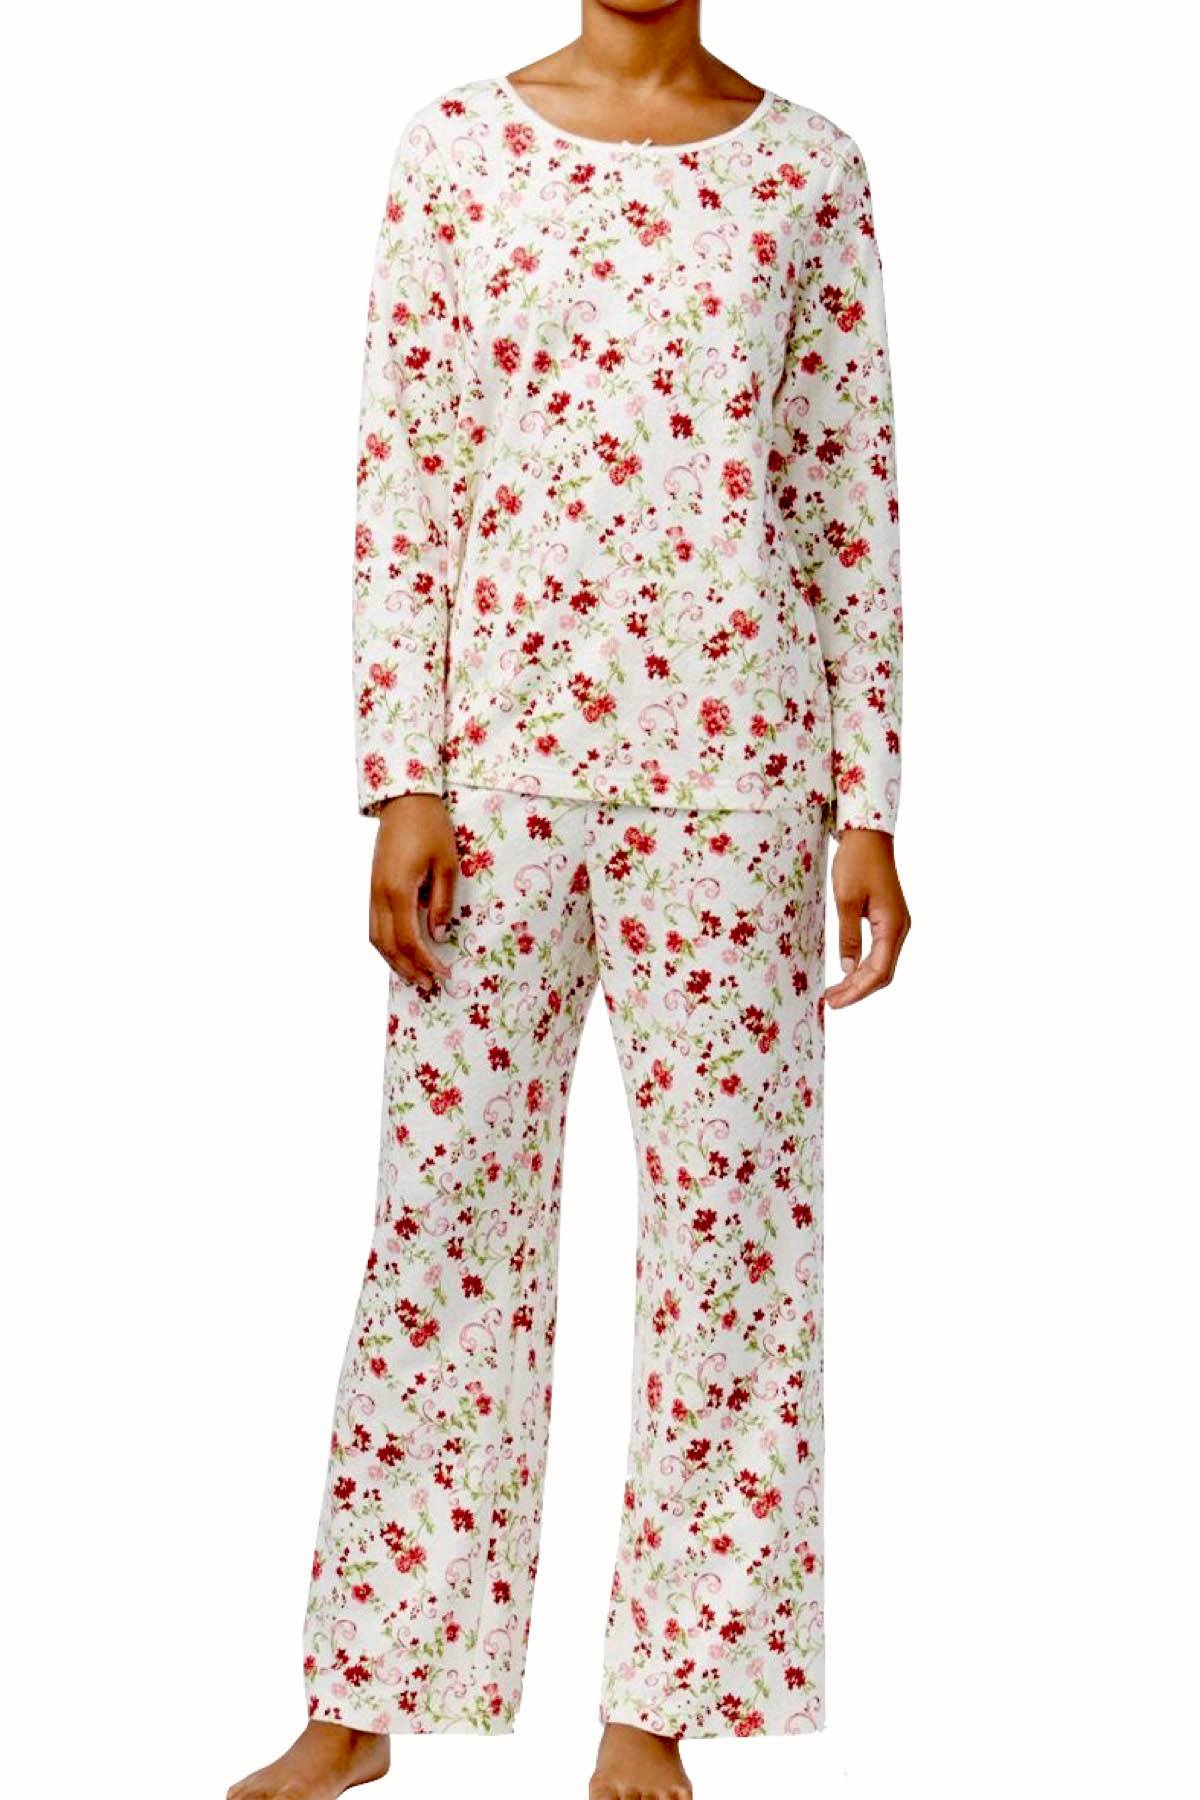 Charter Club Intimates Holiday-Floral Printed Knit PJ 2-Piece Set